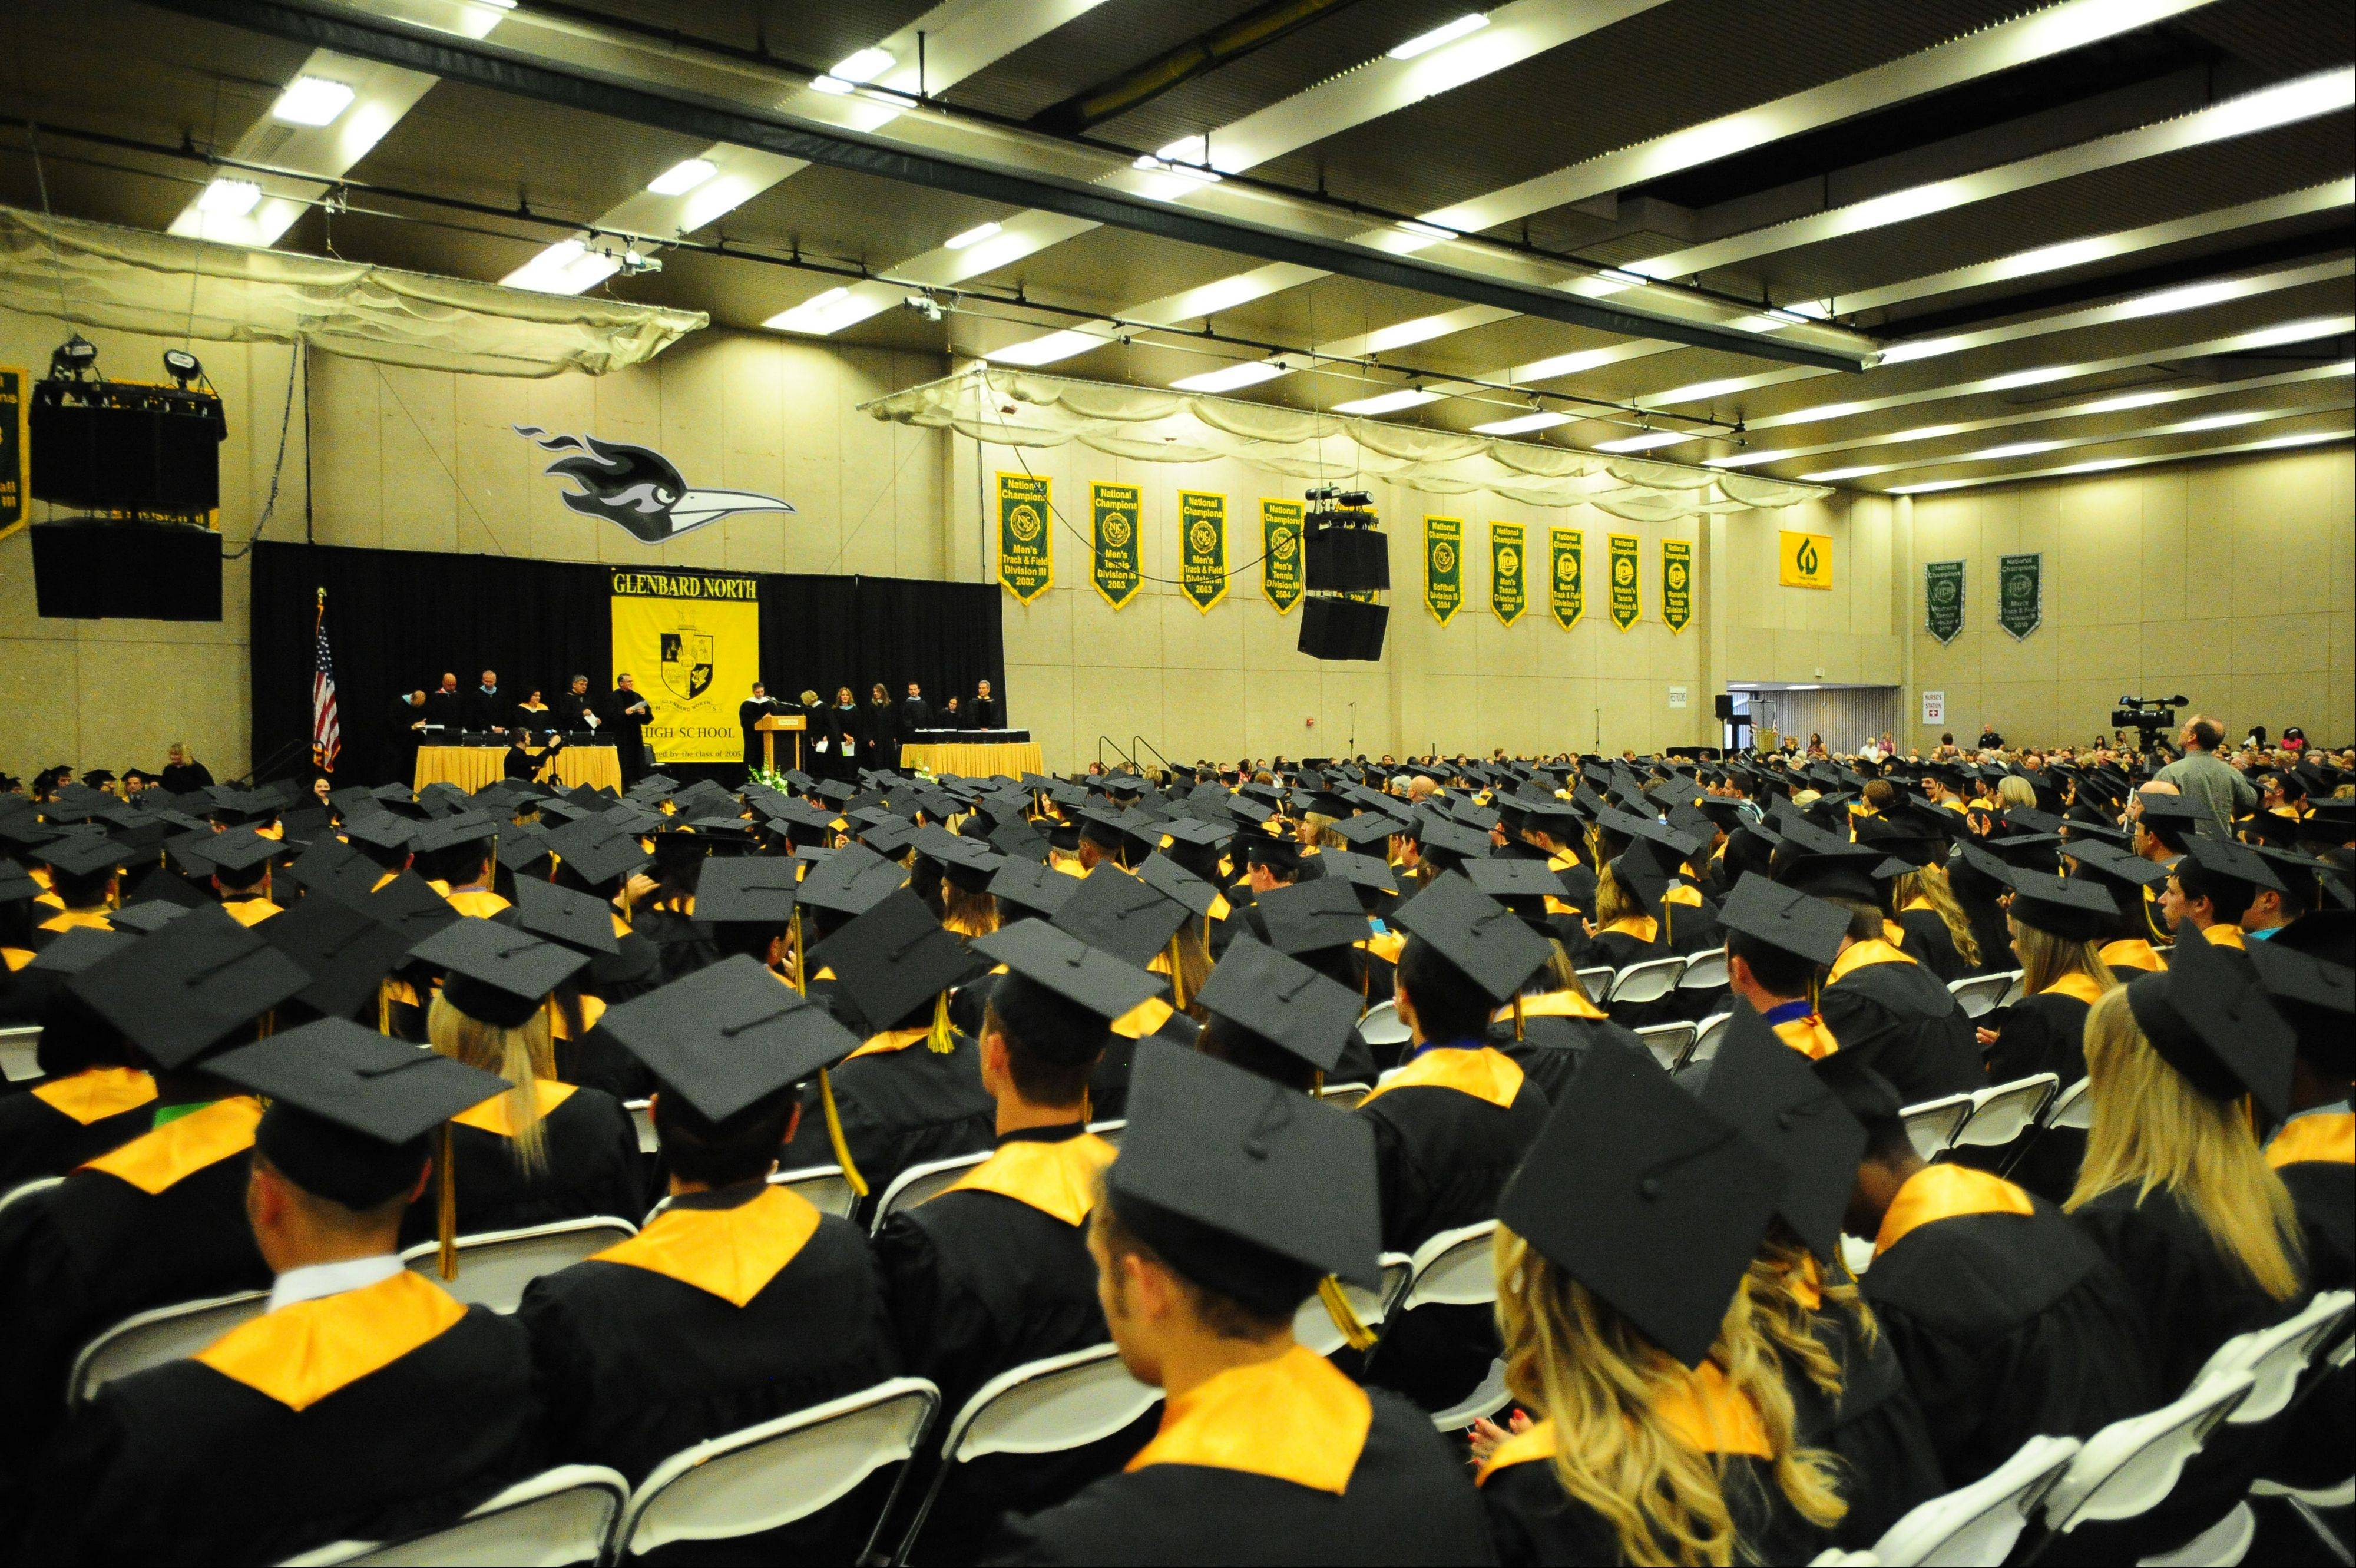 Glenbard North High School held its graduation Sunday June 3 at Glenbard North in Carol Stream.